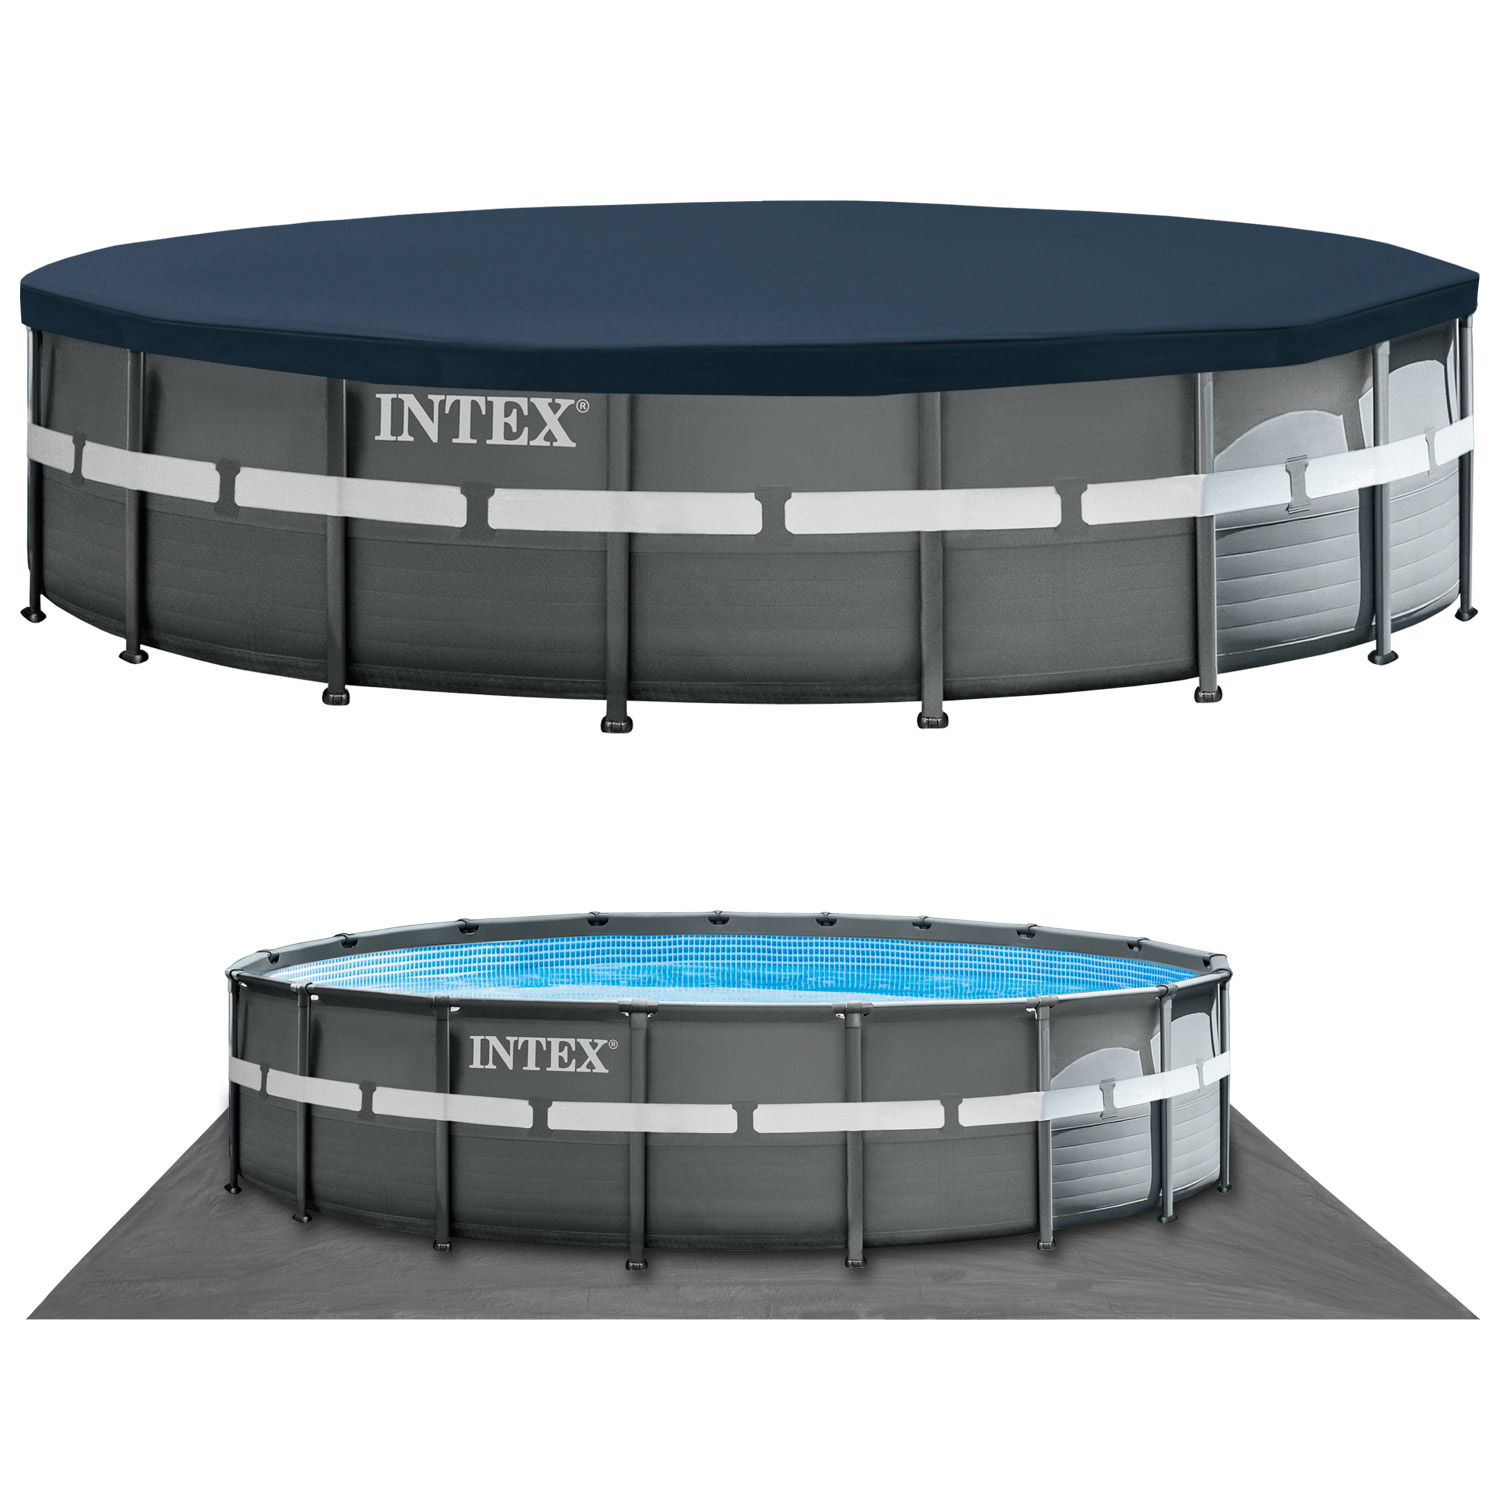 intex 549x132 cm swimming pool ultra frame stahlwand schwimmbad sandfilter 28332 ebay. Black Bedroom Furniture Sets. Home Design Ideas